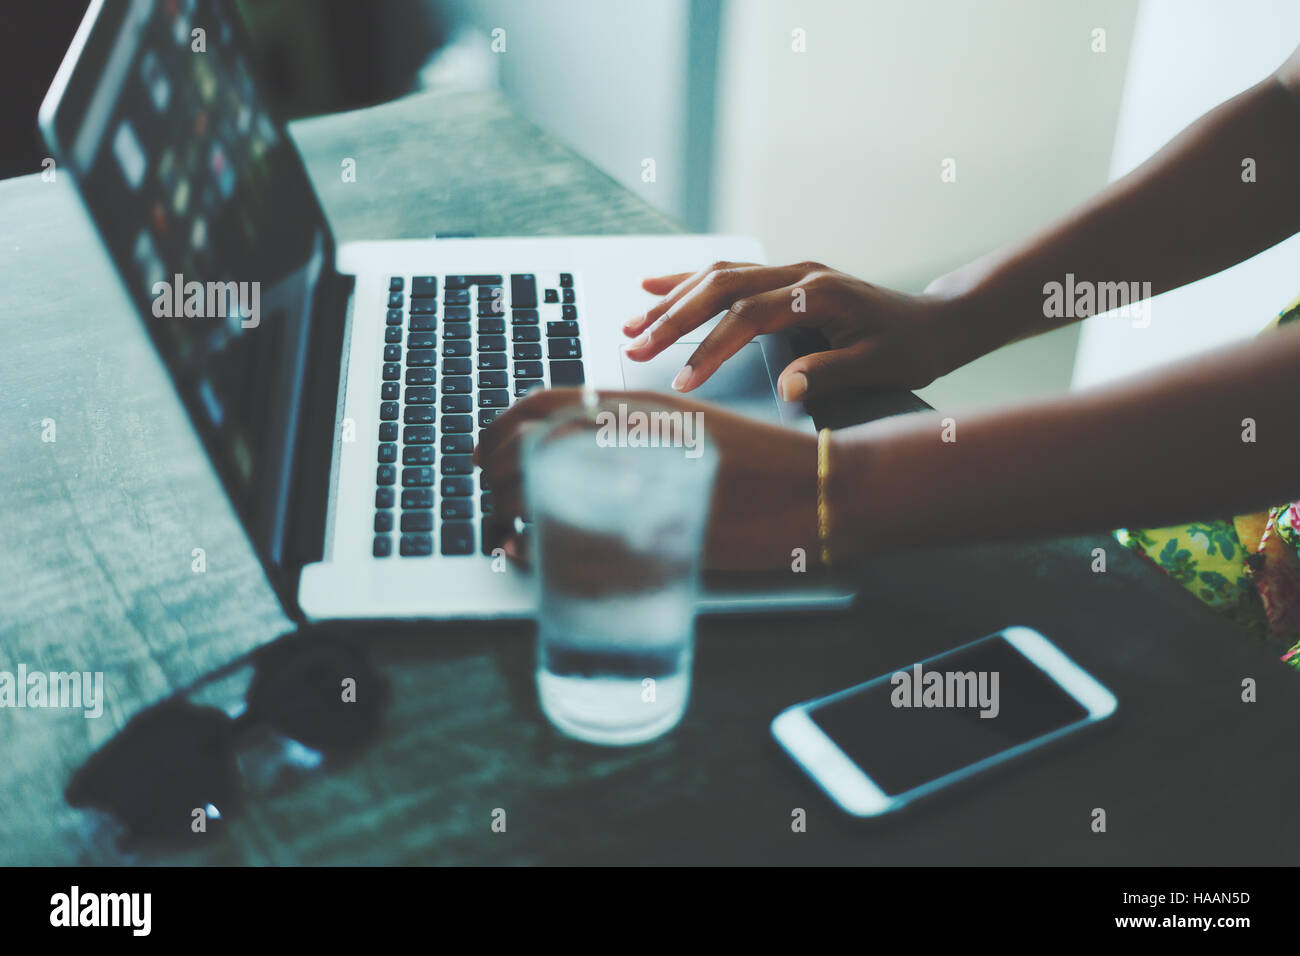 Side view of woman hands using laptop on a stone table with glass of water, smartphone and sunglasses on it, dark - Stock Image